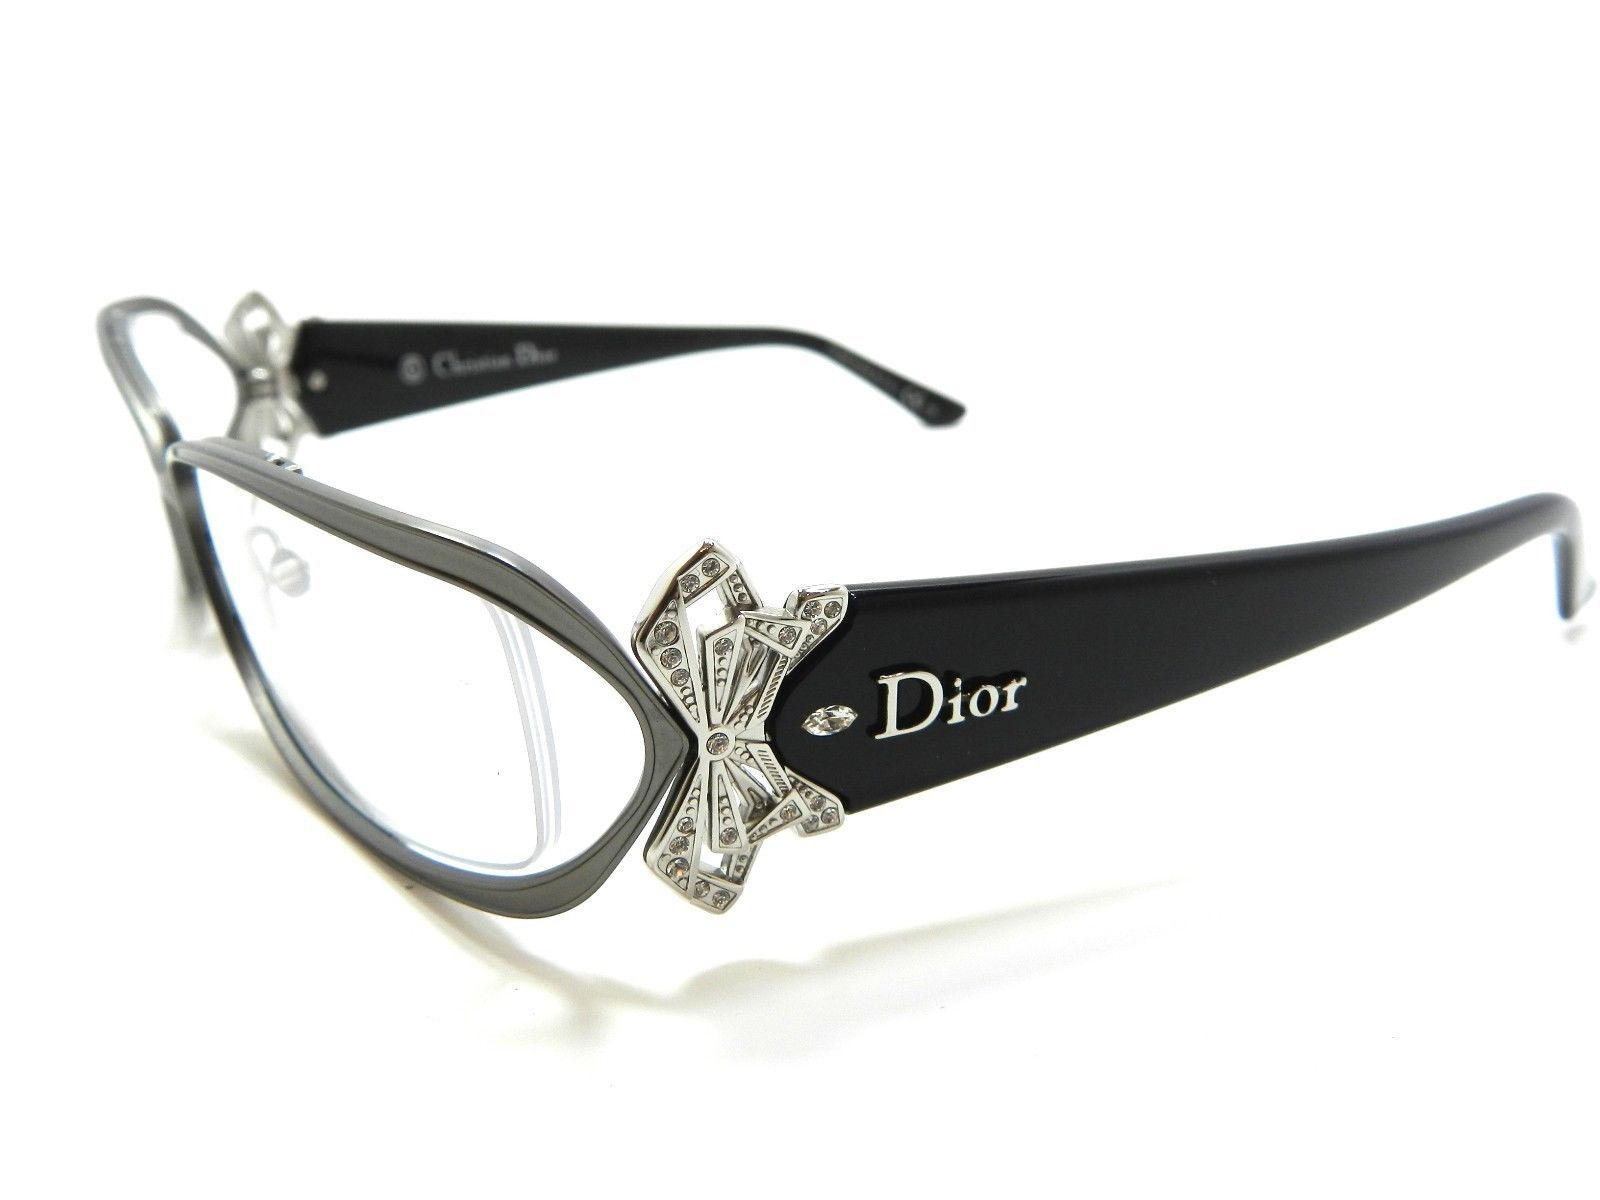 Christian Dior Eyeglasses 3757 27H 53mm 16mm 130mm Optical New ...